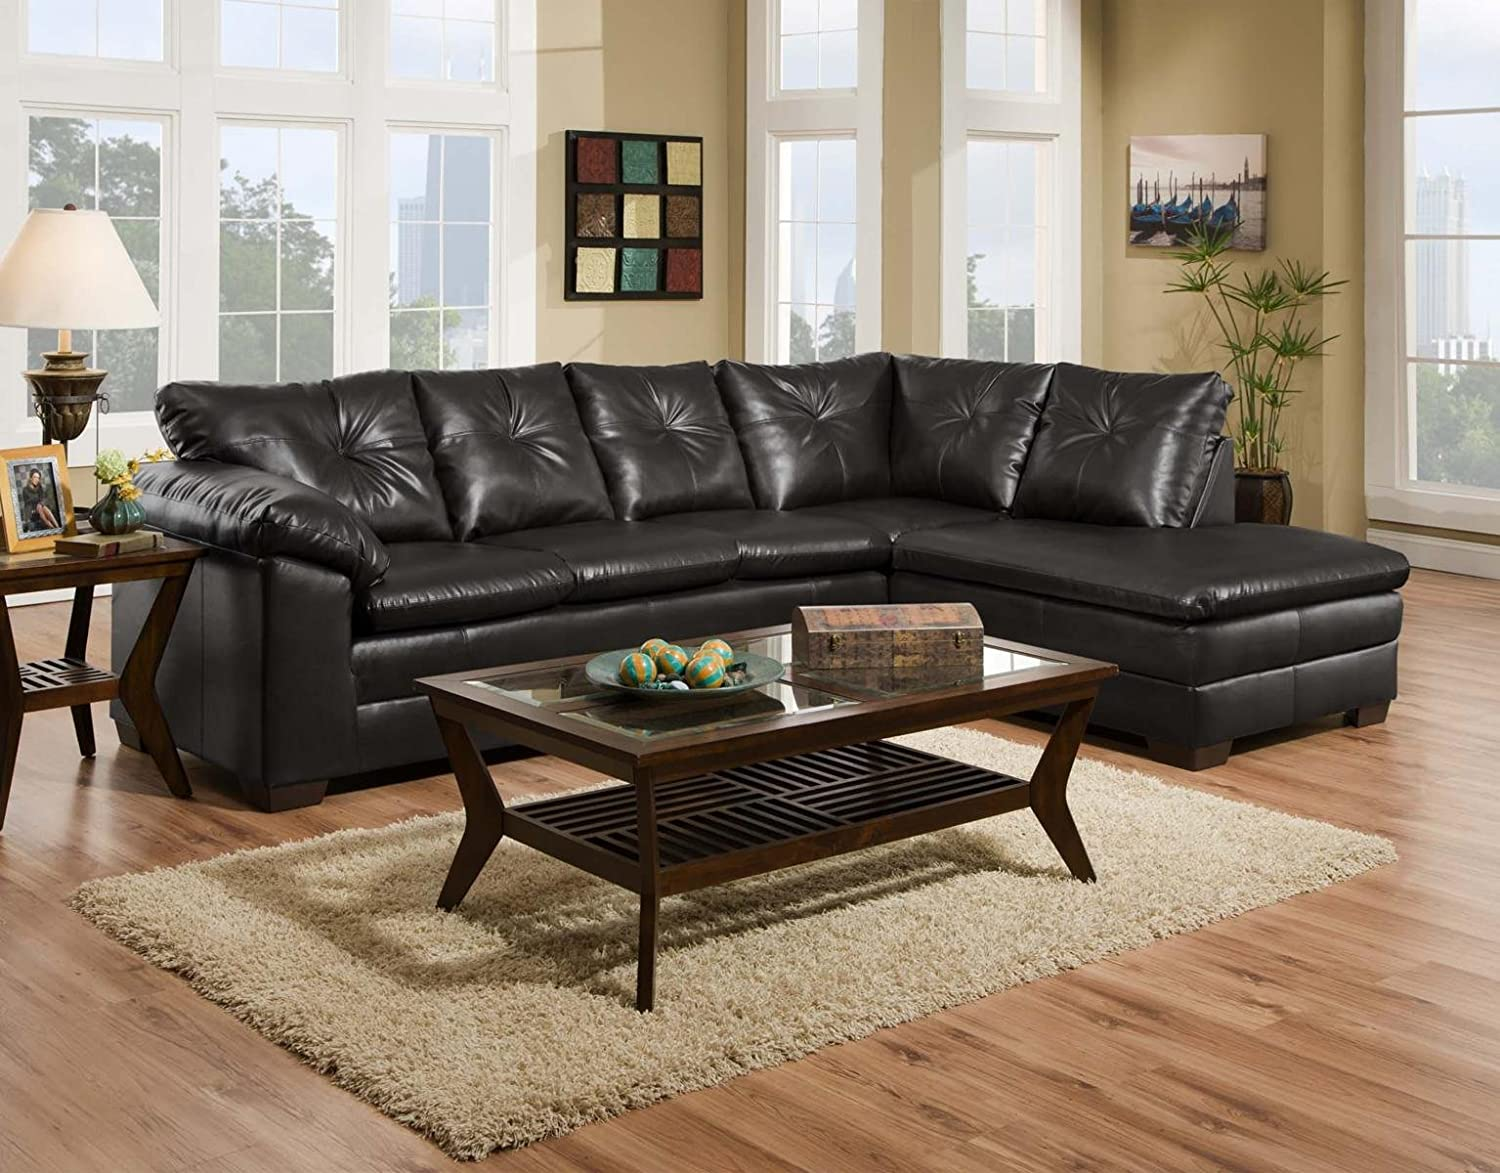 Chelsea Home Furniture Epsilon 2 pc Sectional - Freeport Black